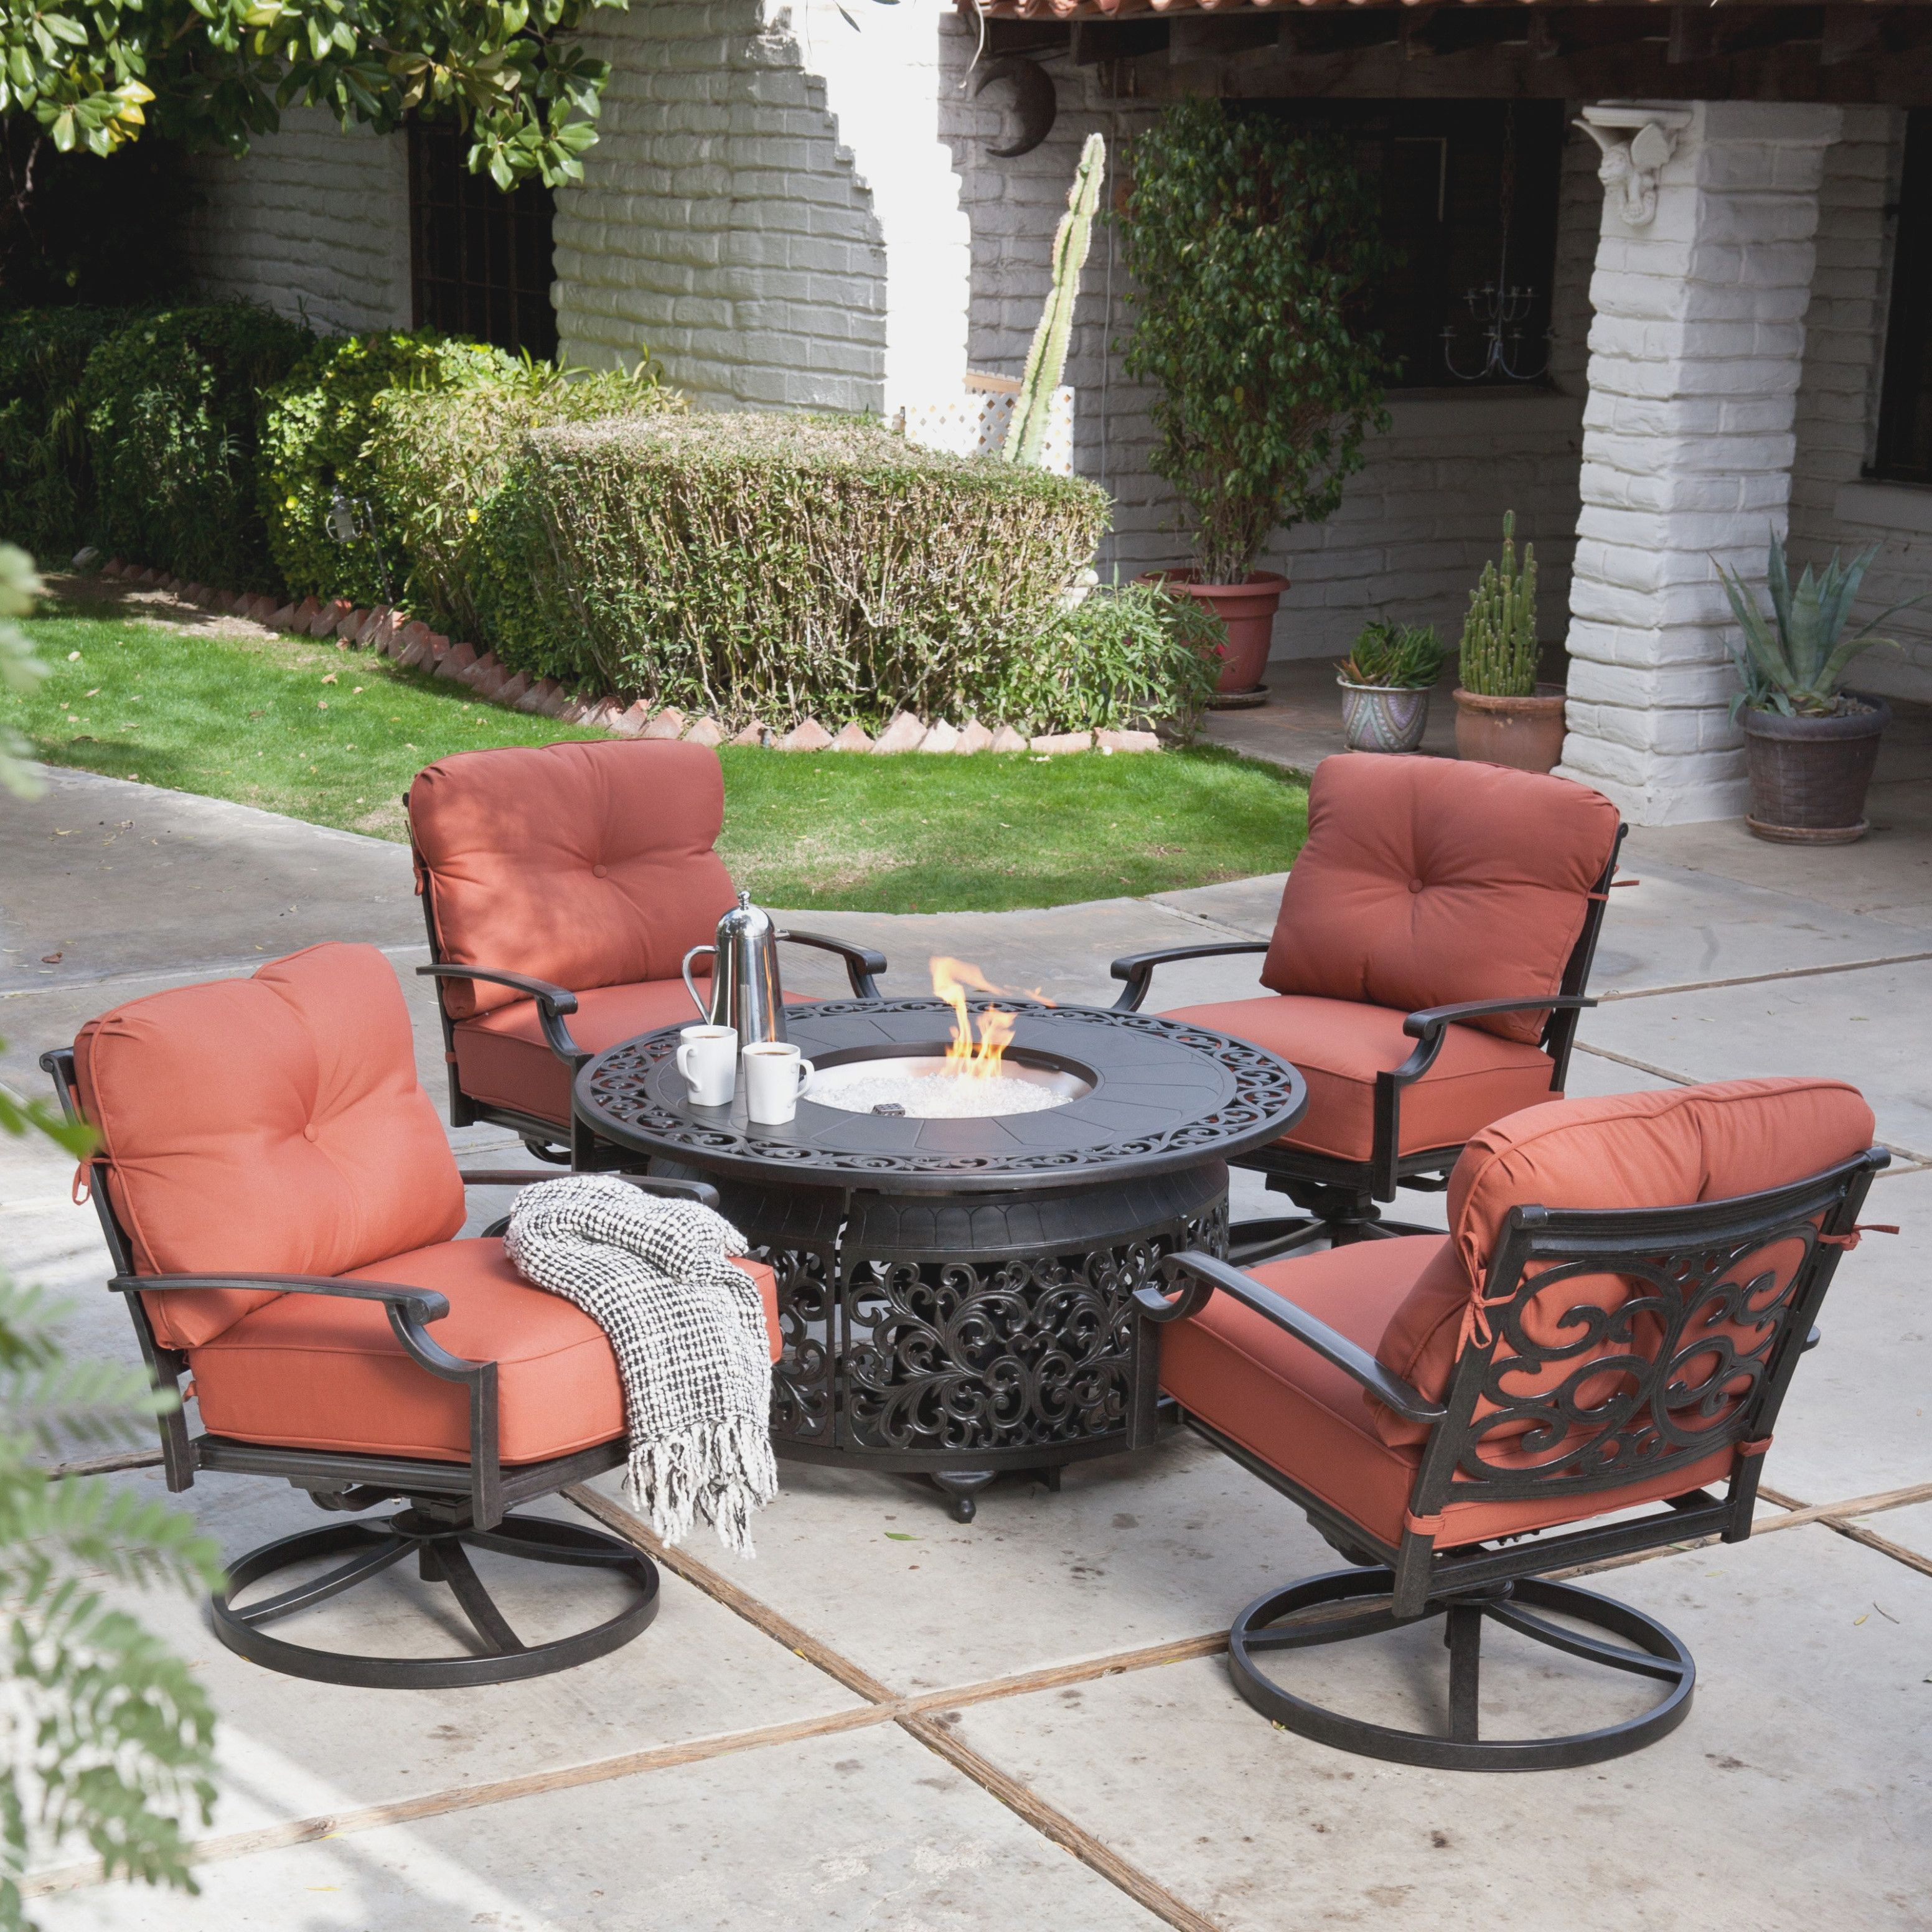 Costco Patio Furniture With Fire Pit Fire Pit Patio Set Fire Pit Patio Furniture Patio Furniture Fire